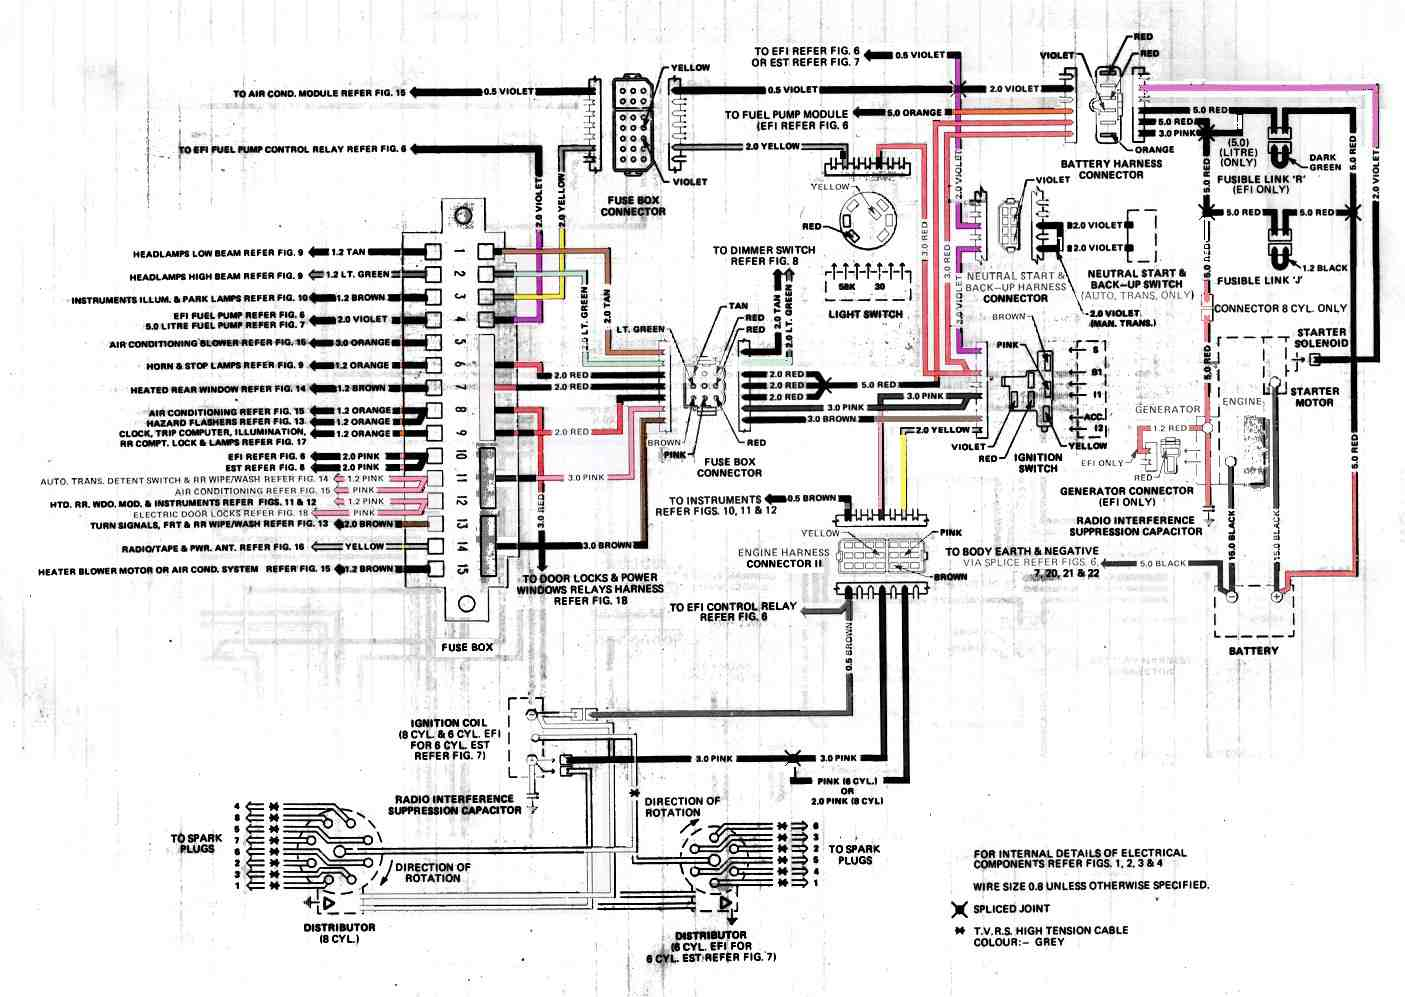 Holden car manuals wiring diagrams pdf fault codes download asfbconference2016